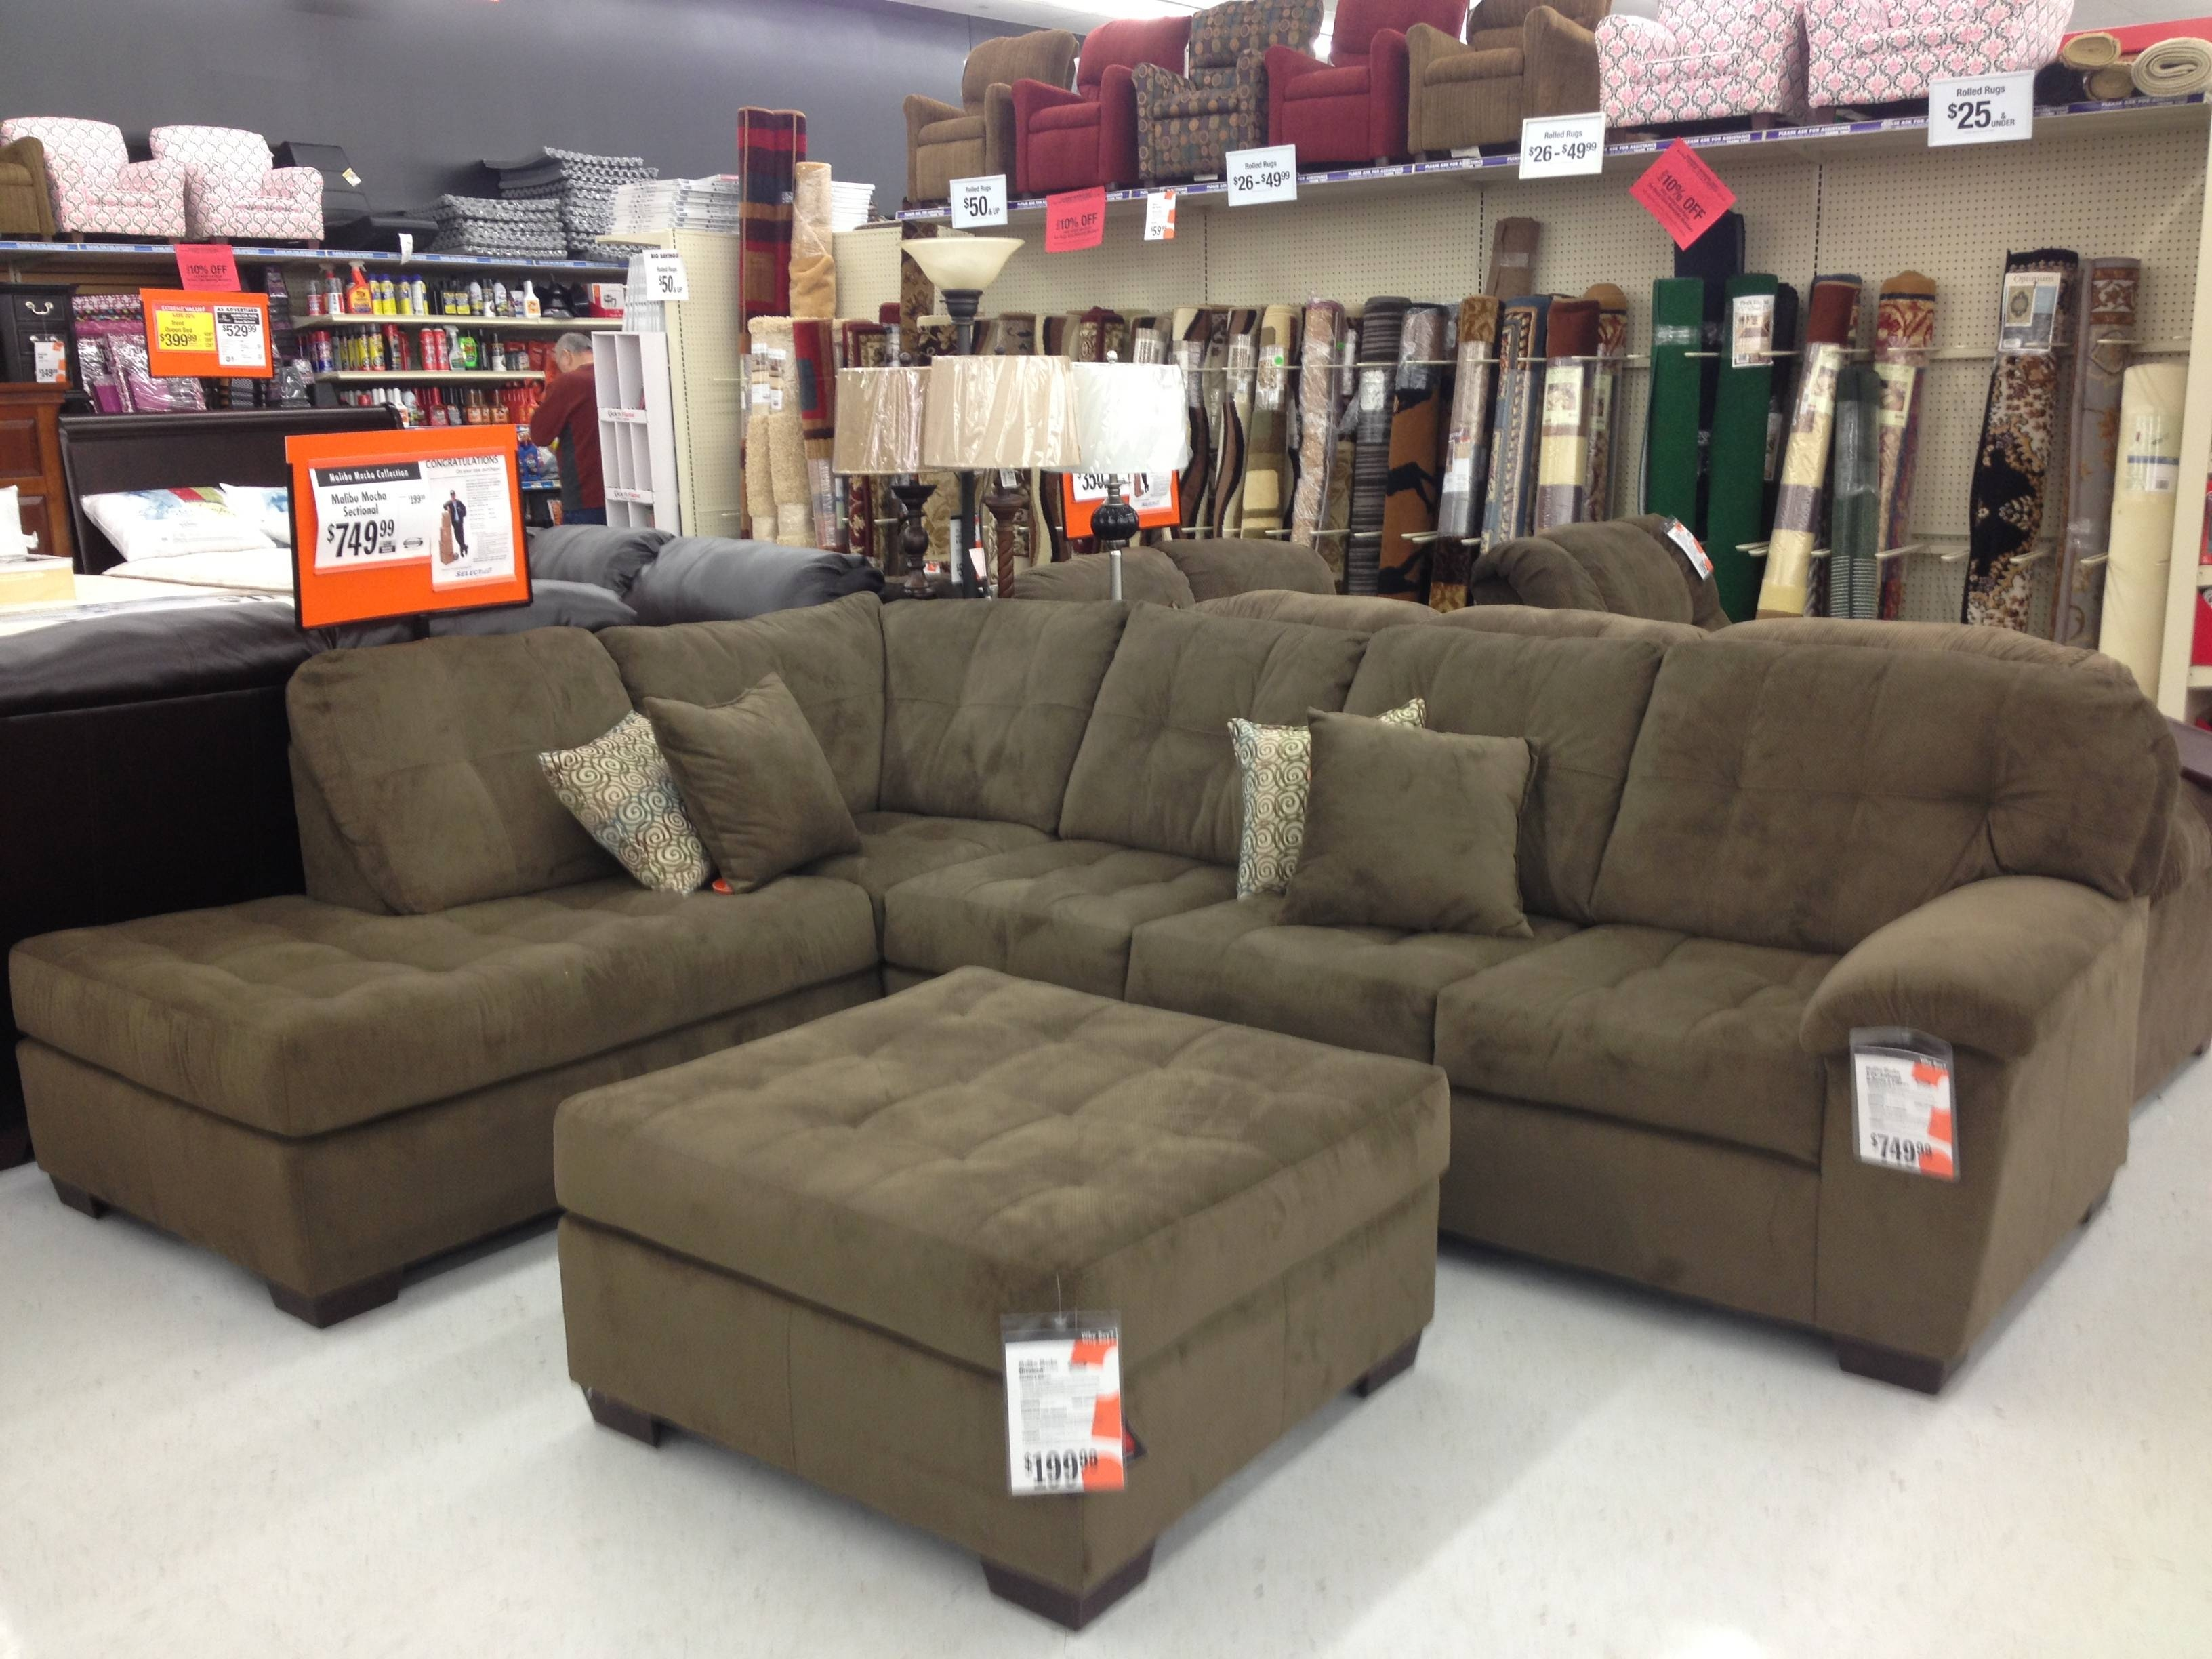 Furniture: Sectional Sofas Big Lots Simmons Bonded Leather Sofa pertaining to Big Lots Leather Sofas (Image 8 of 15)